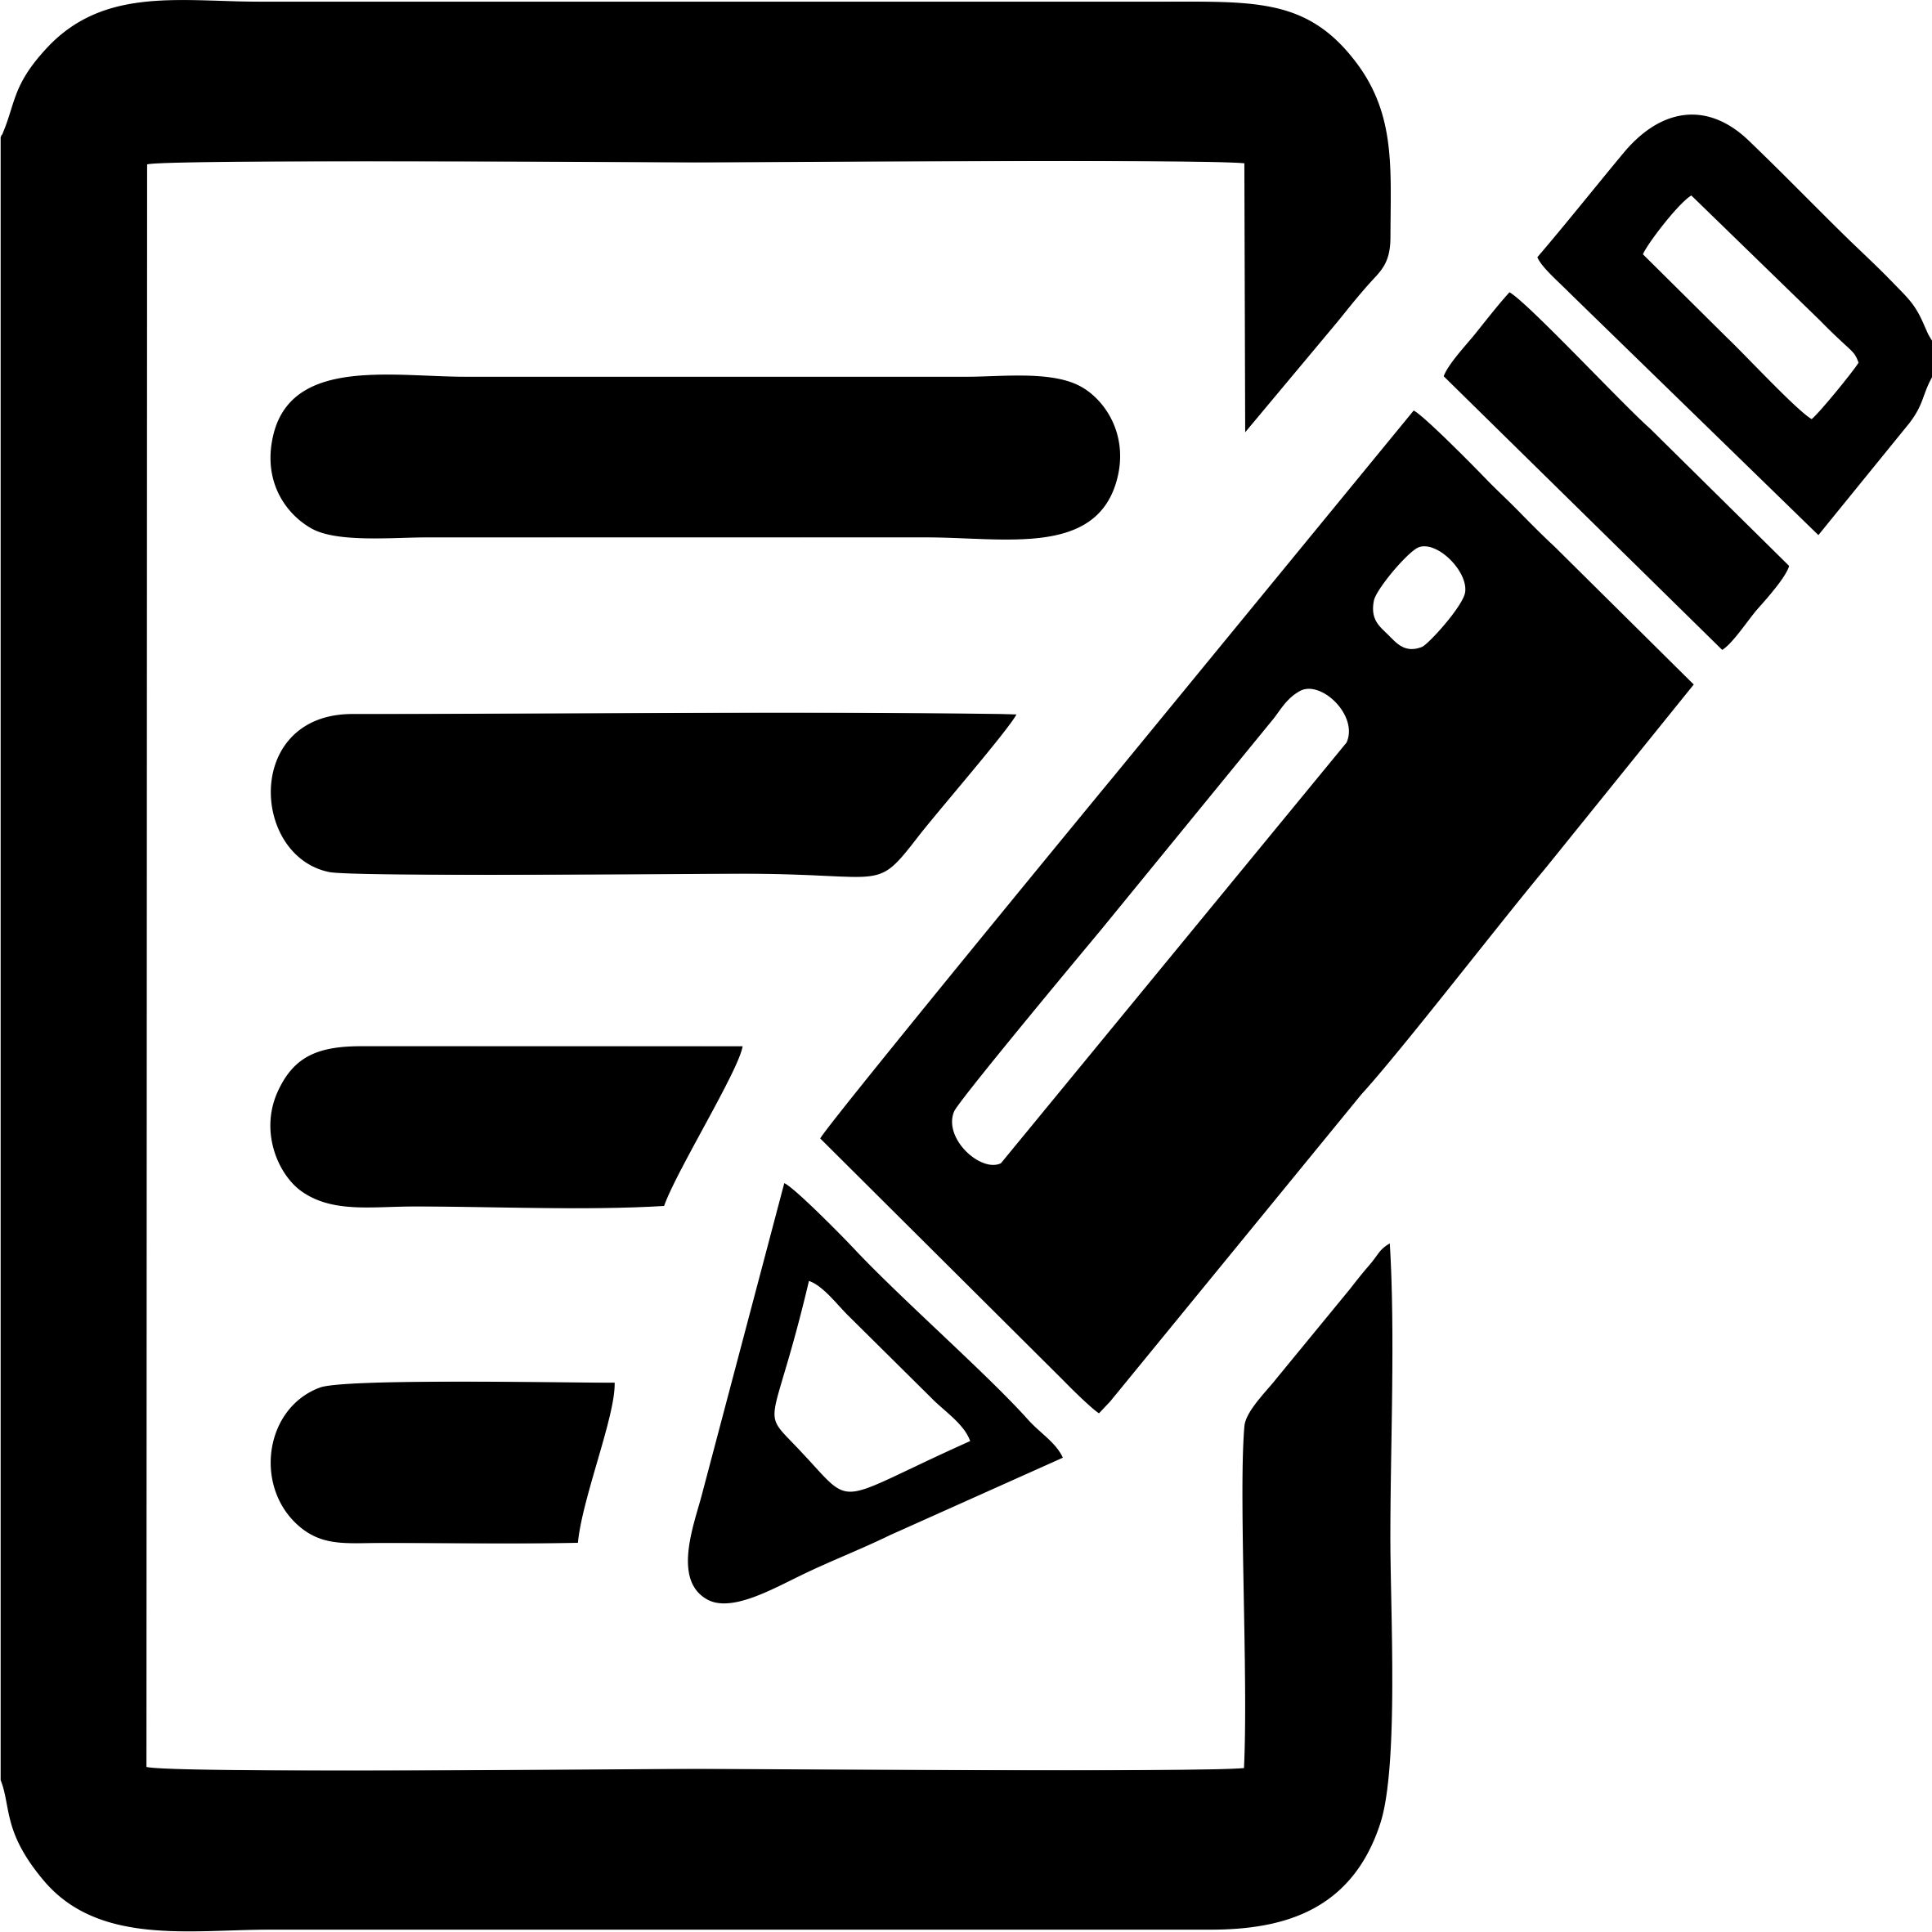 Writer clipart letter writing. Computer icons coin transprent